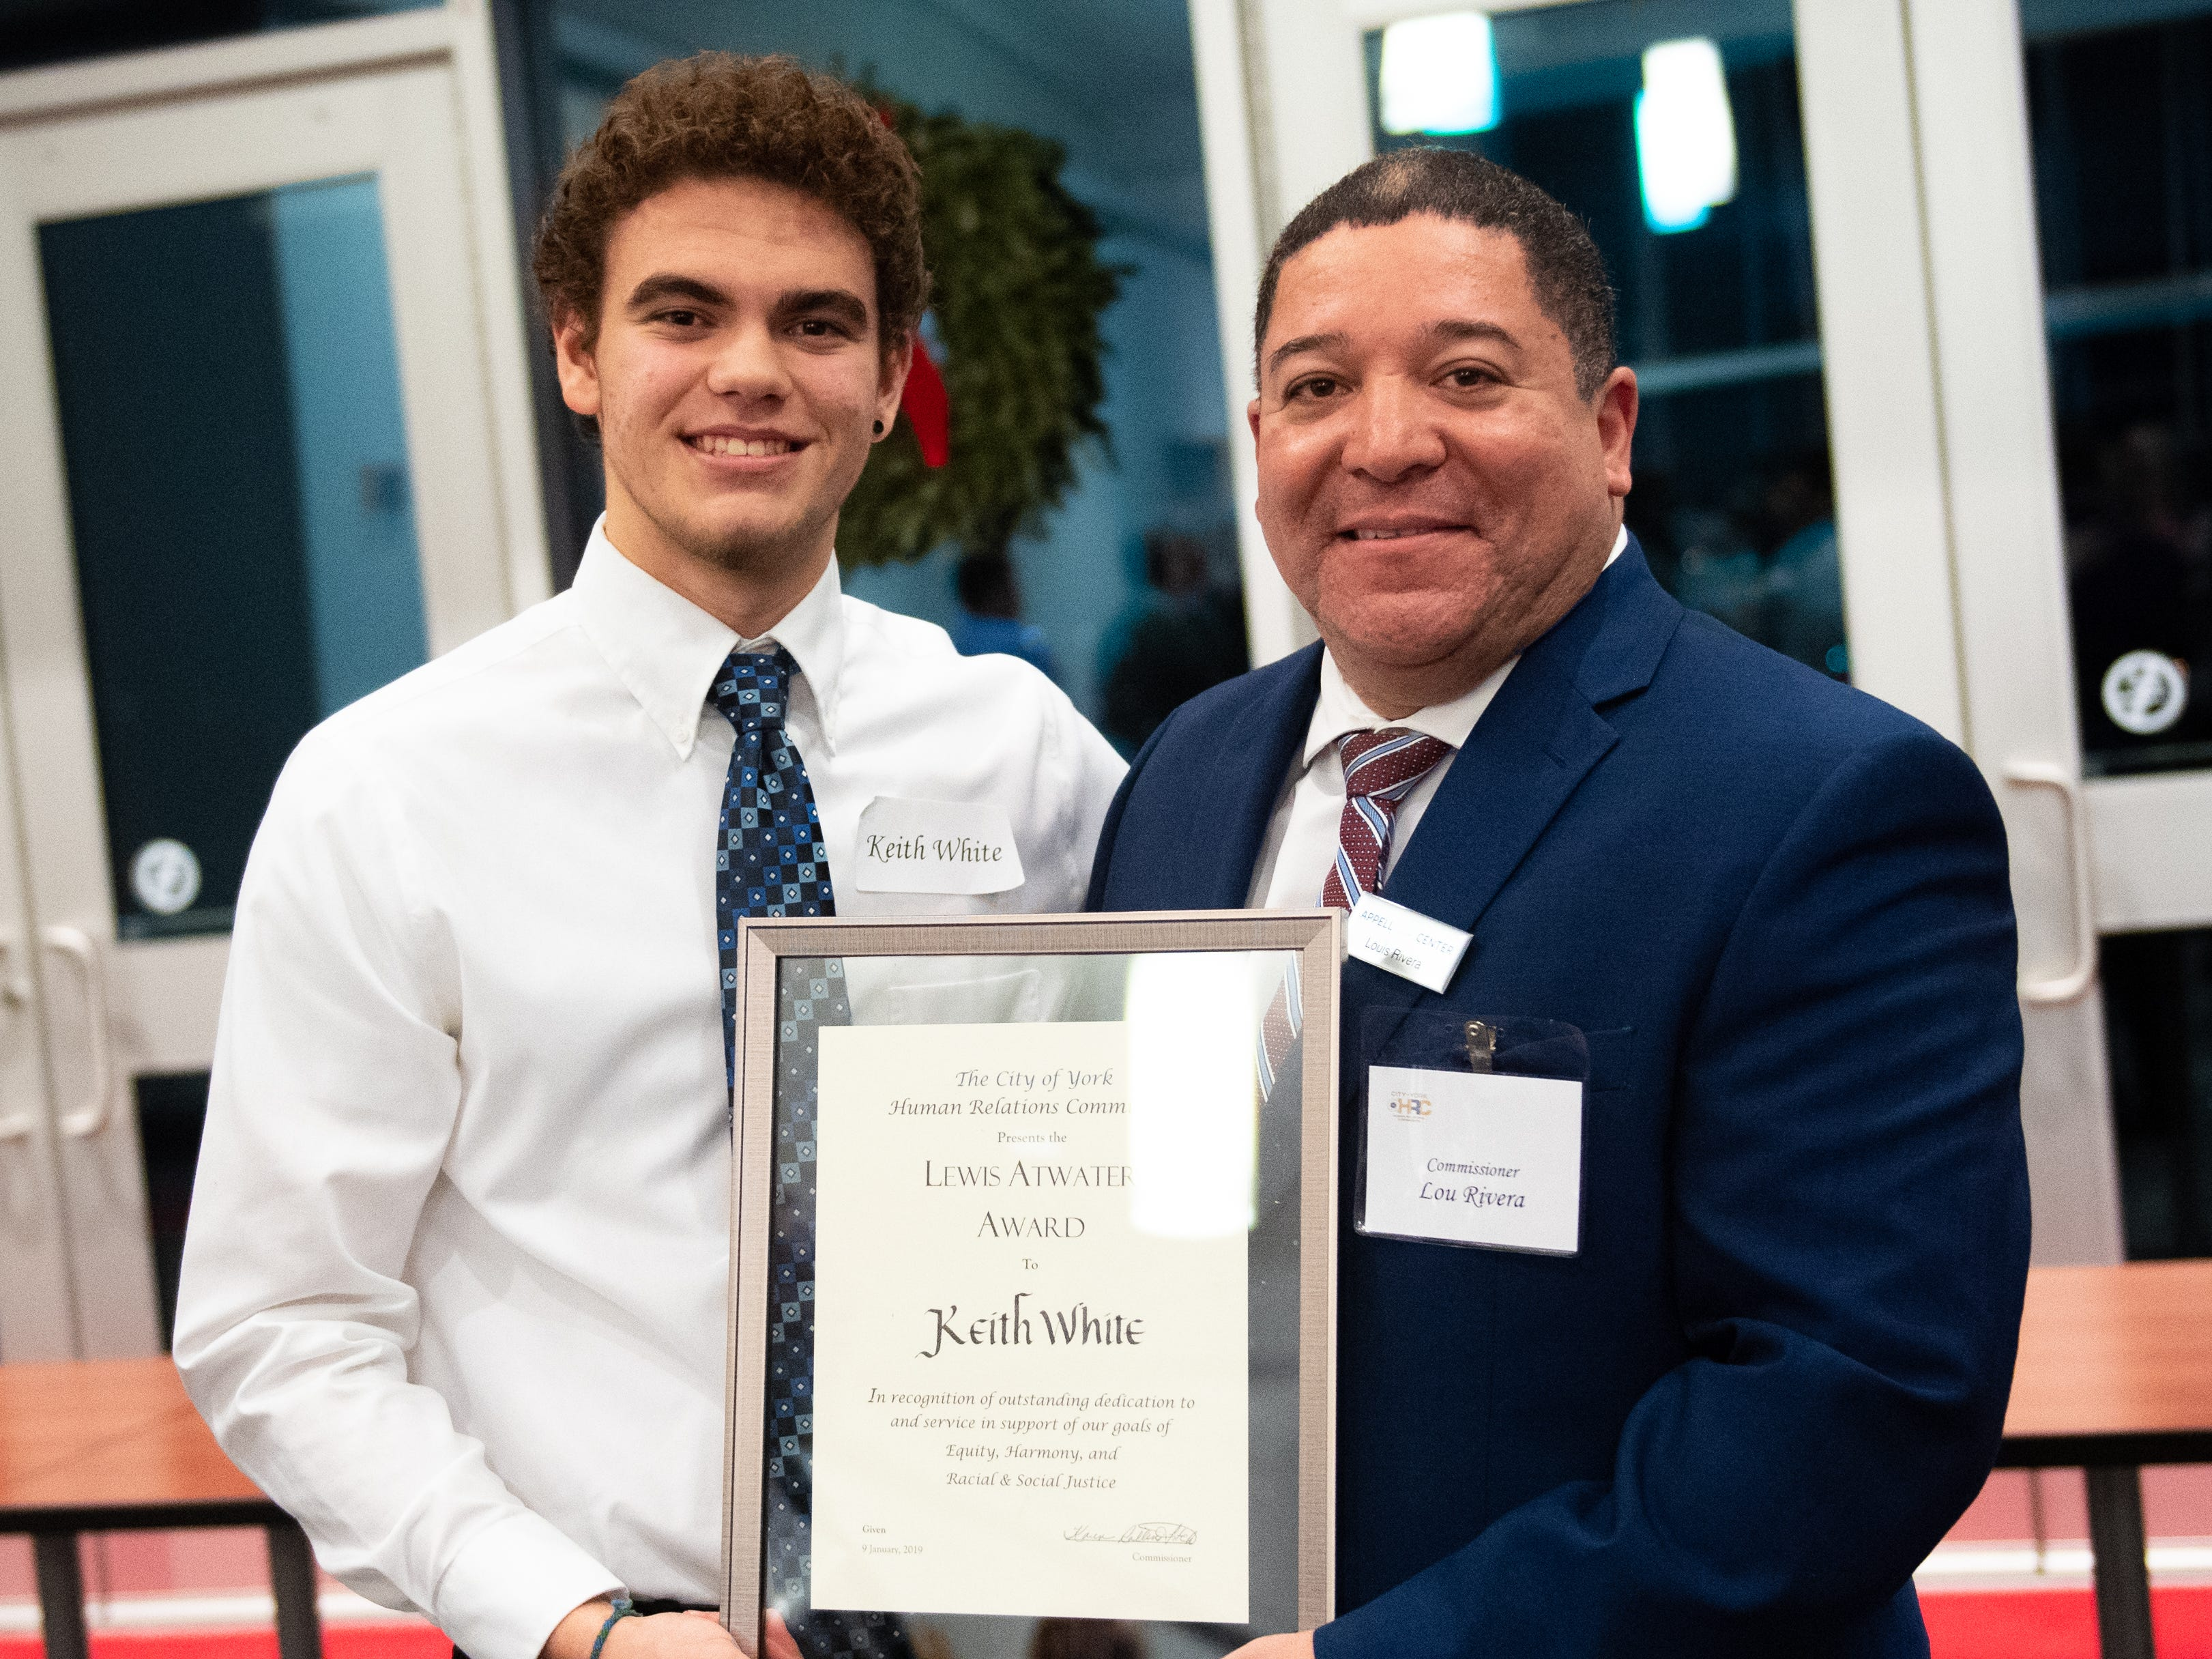 Lewis Atwater Award winner Keith White (left) and Commissioner Luis Rivera (right) can't hide their smiles as they hold the award during the 2019 City of York Human Relations Commission Diversity Dinner at York College, January 9, 2019.